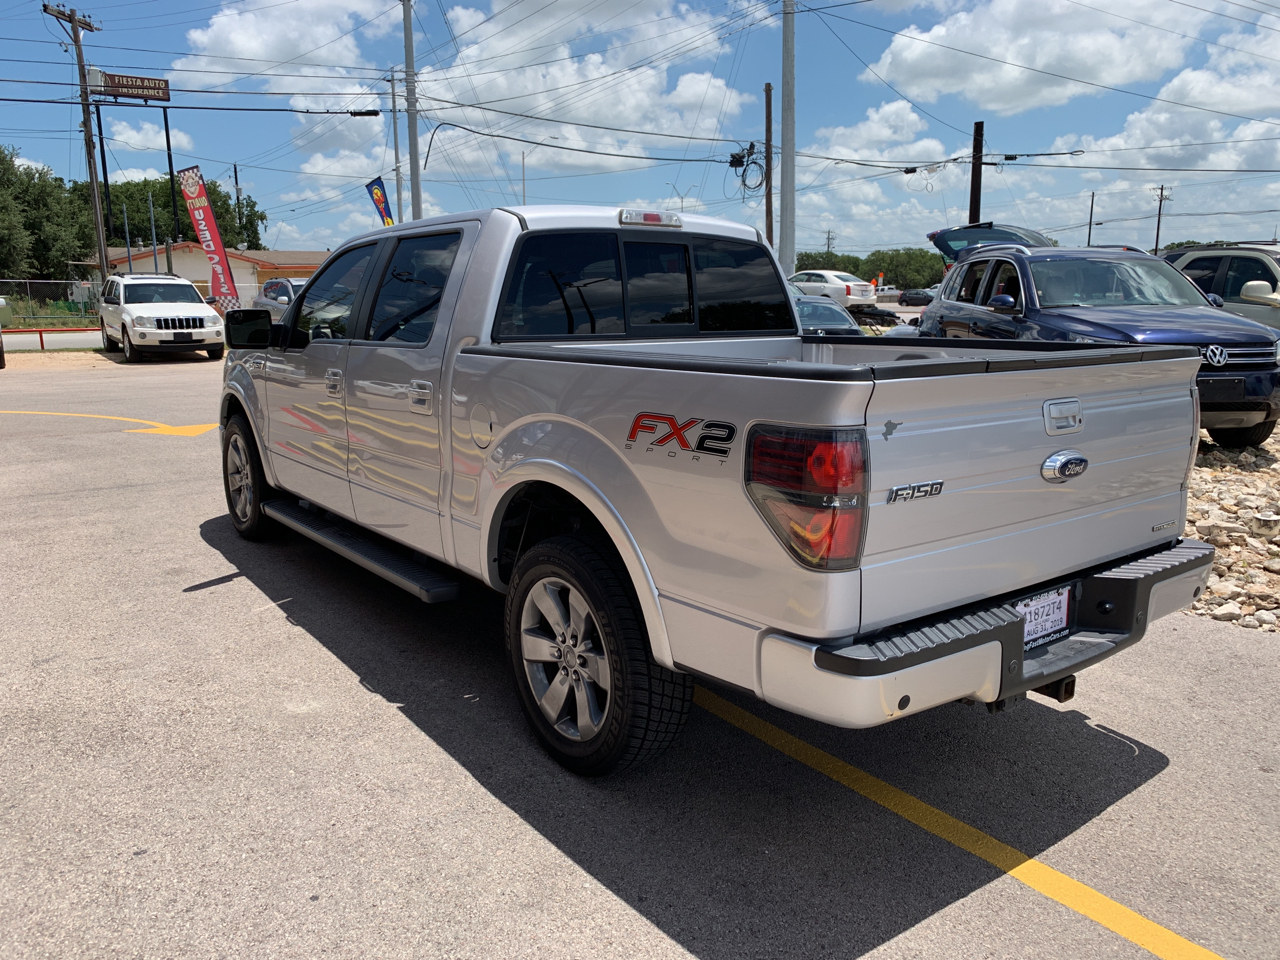 2012 Ford F-150 SuperCrew Crew Cab 139